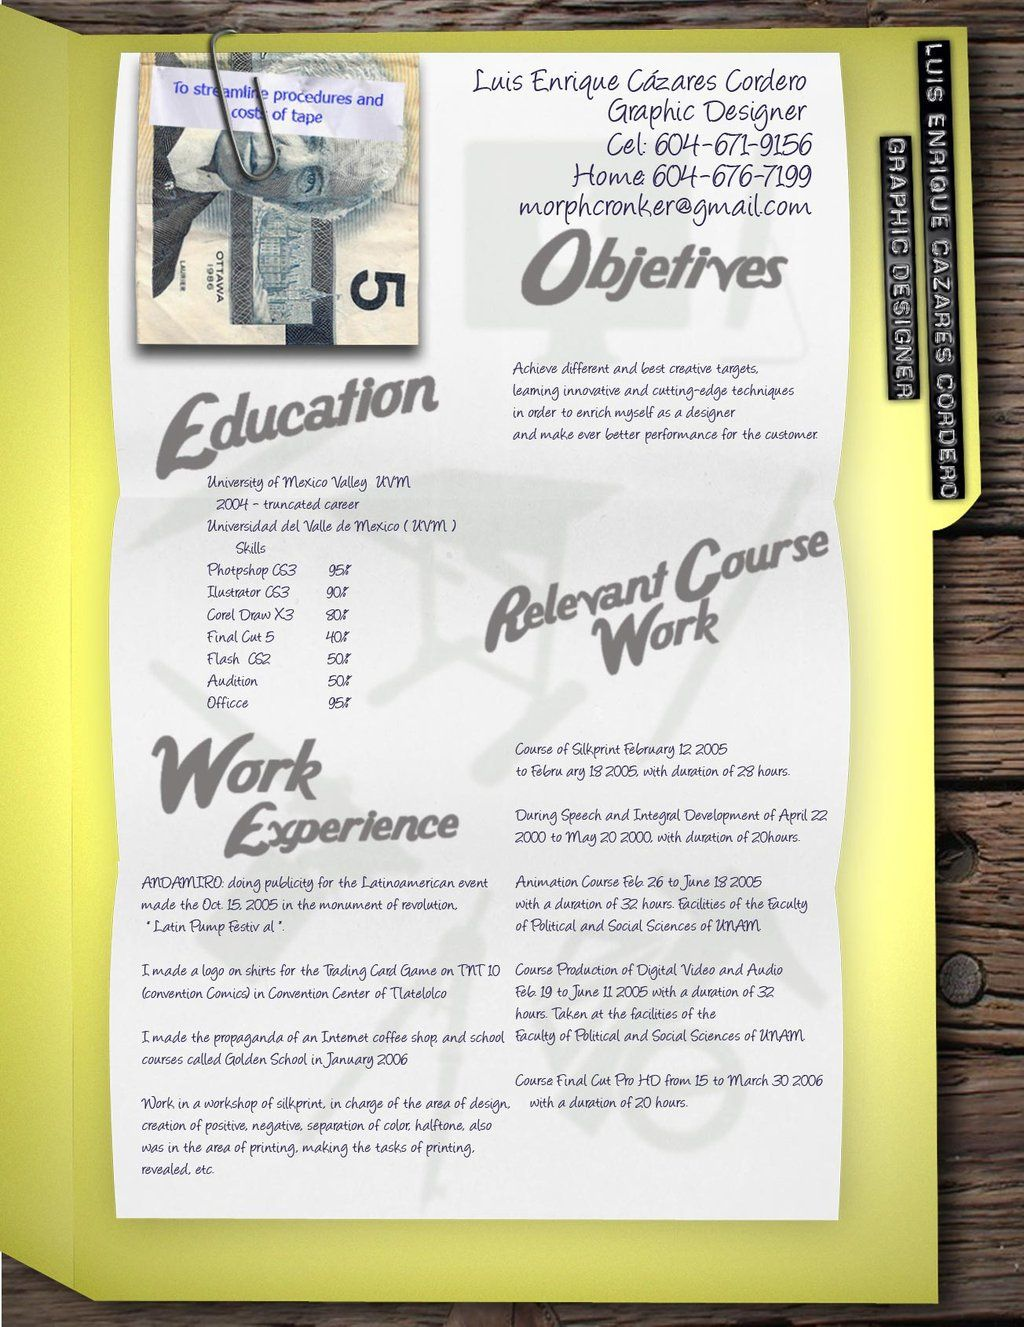 Free Resume Templates download for freshers   latest Resume builder     Free Resume Templates download for freshers   latest Resume builder  On our  website  we have uploaded dozens of free resume templates that are  available for